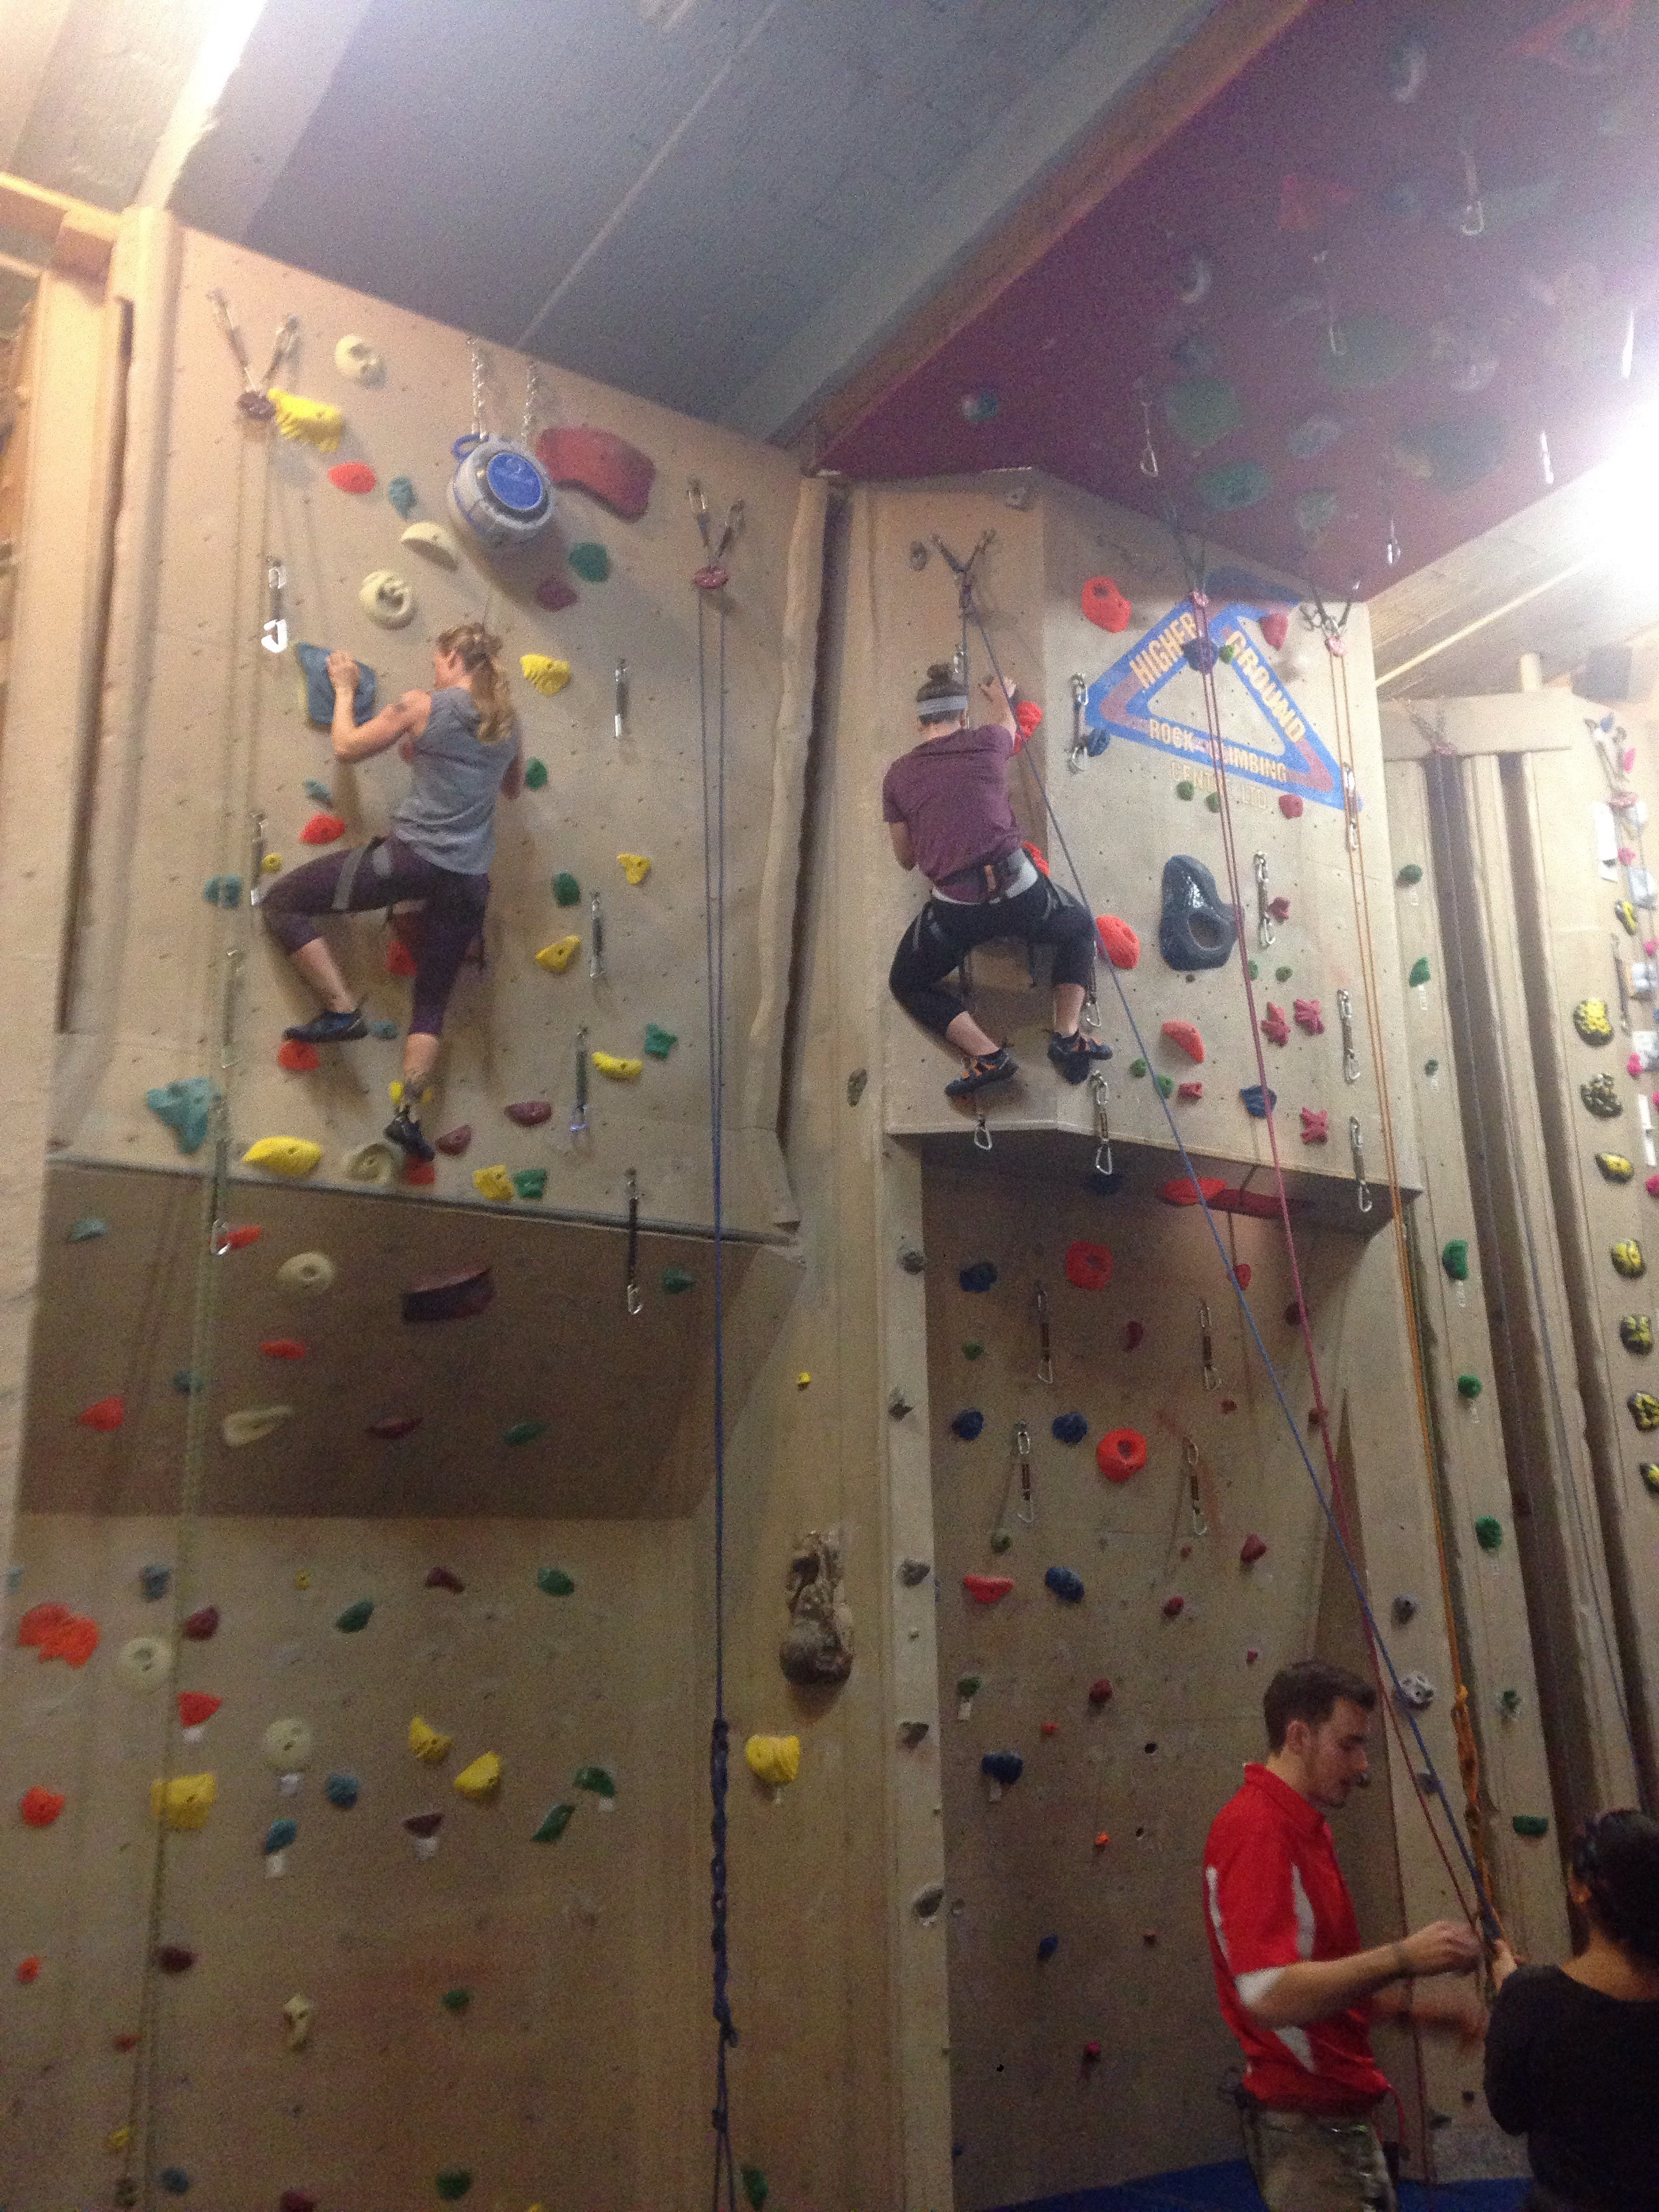 Brandy and Sarah. From our Rock Climbing gym trip.